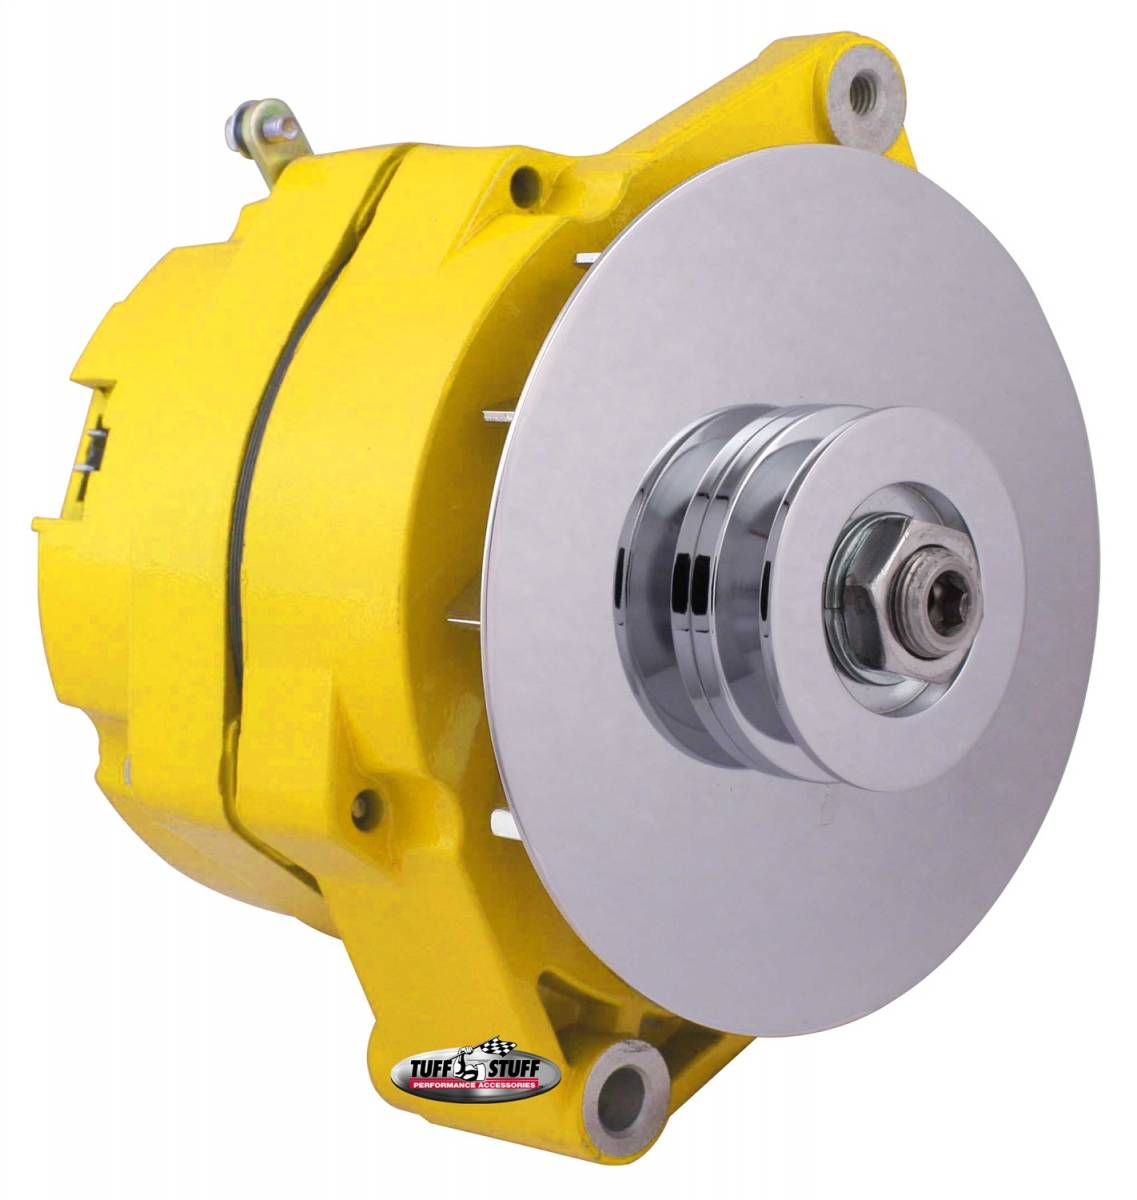 Tuff Stuff Performance - Alternator 80 AMP OEM Wire 10si Case V Groove Pulley External Regulator Yellow Powdercoat w/Chrome Accents Must Be Used With An External Solid State Voltage Regulator 7102NFYELLOW